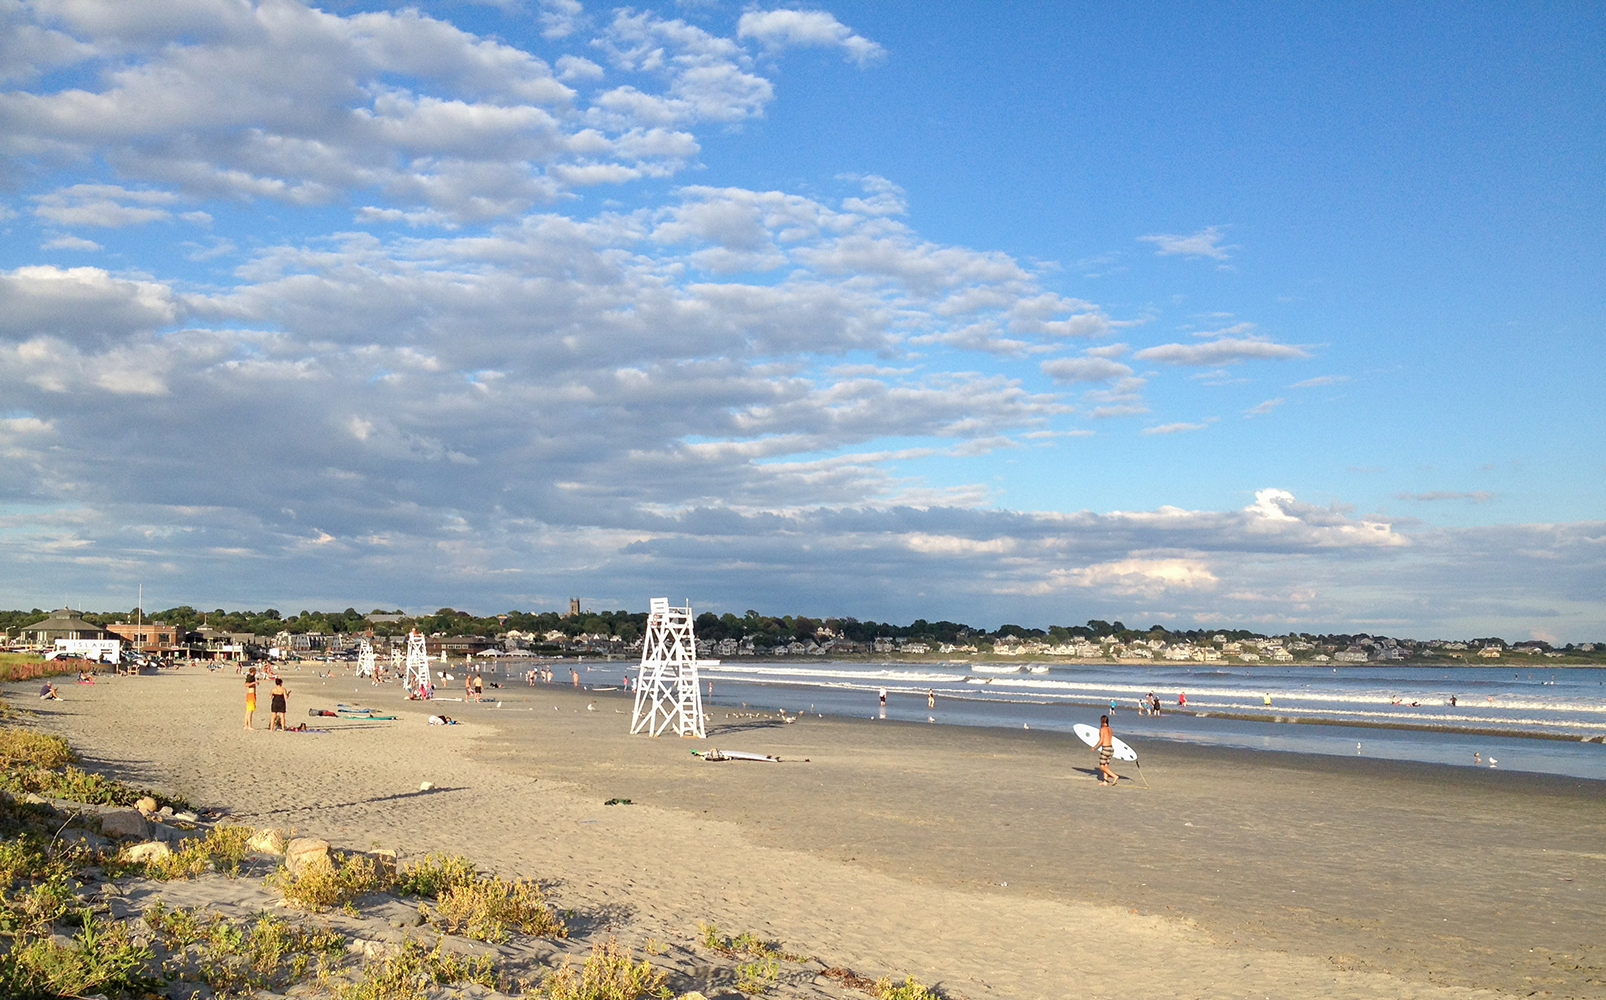 Easton's Beach, Photo credit: Discover Newport.